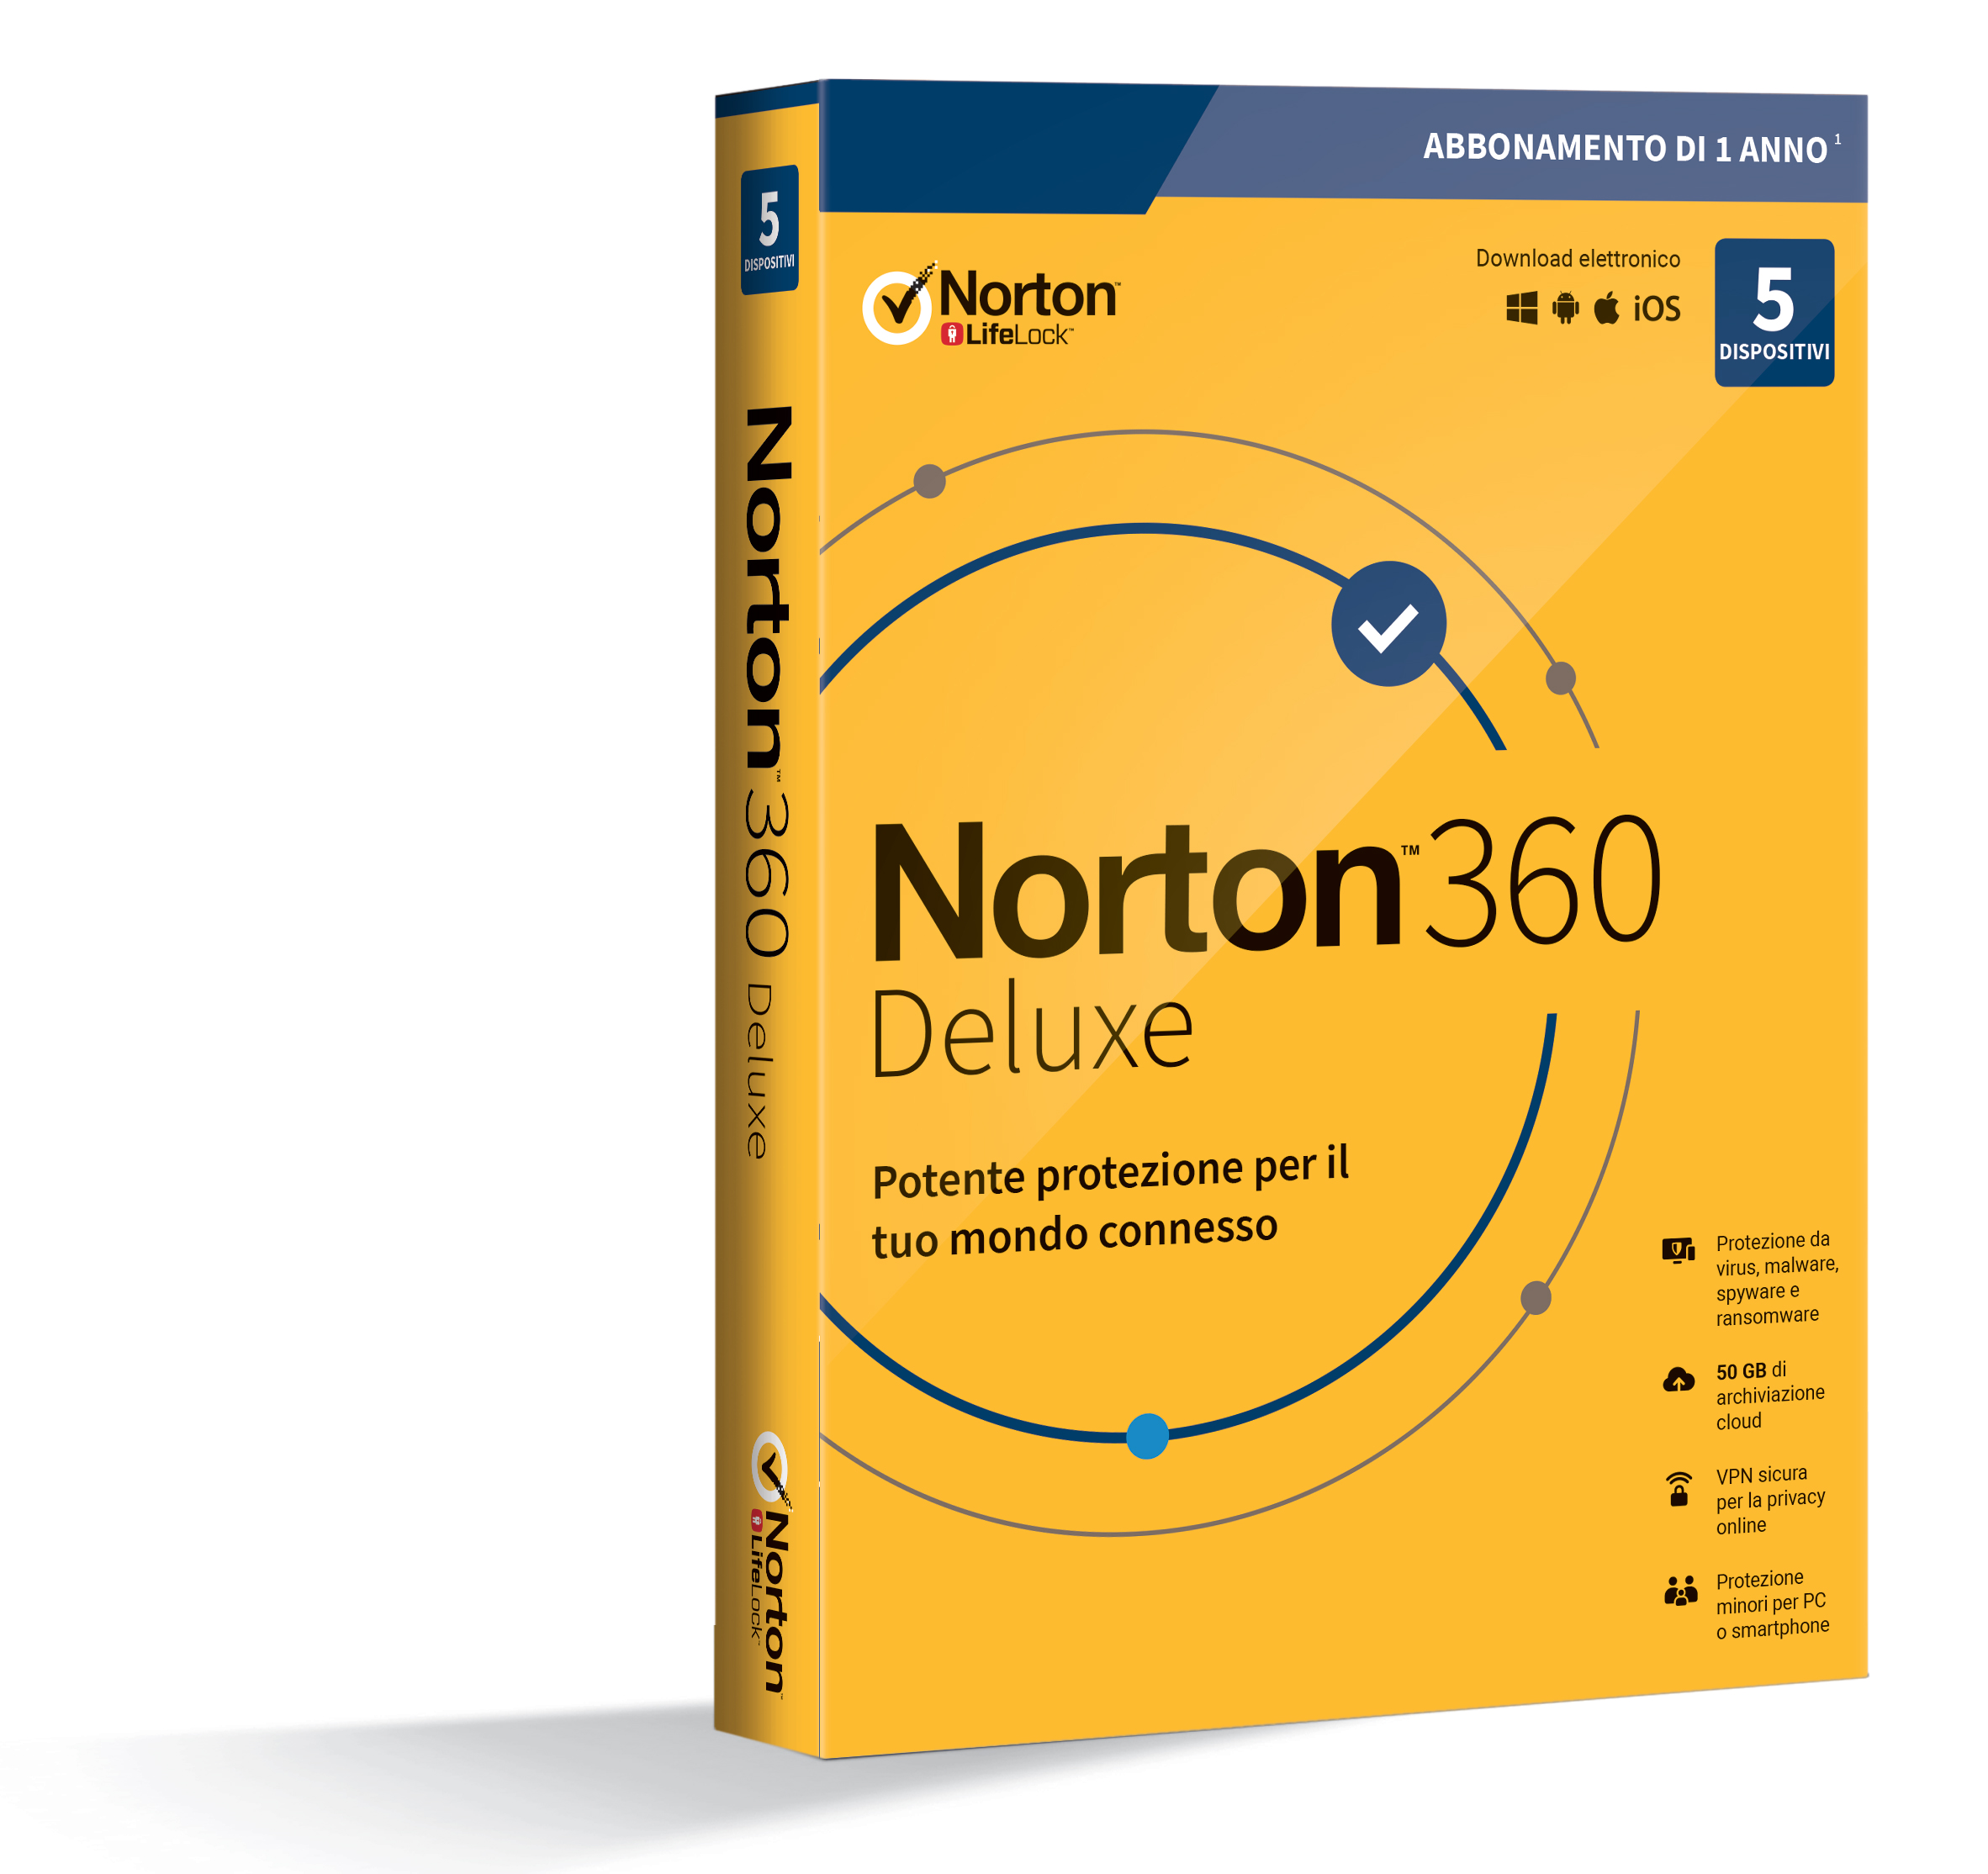 SYMANTEC NORTON 360 DELUXE 2020 5 DISPOSITIVI 12 MESI 50GB